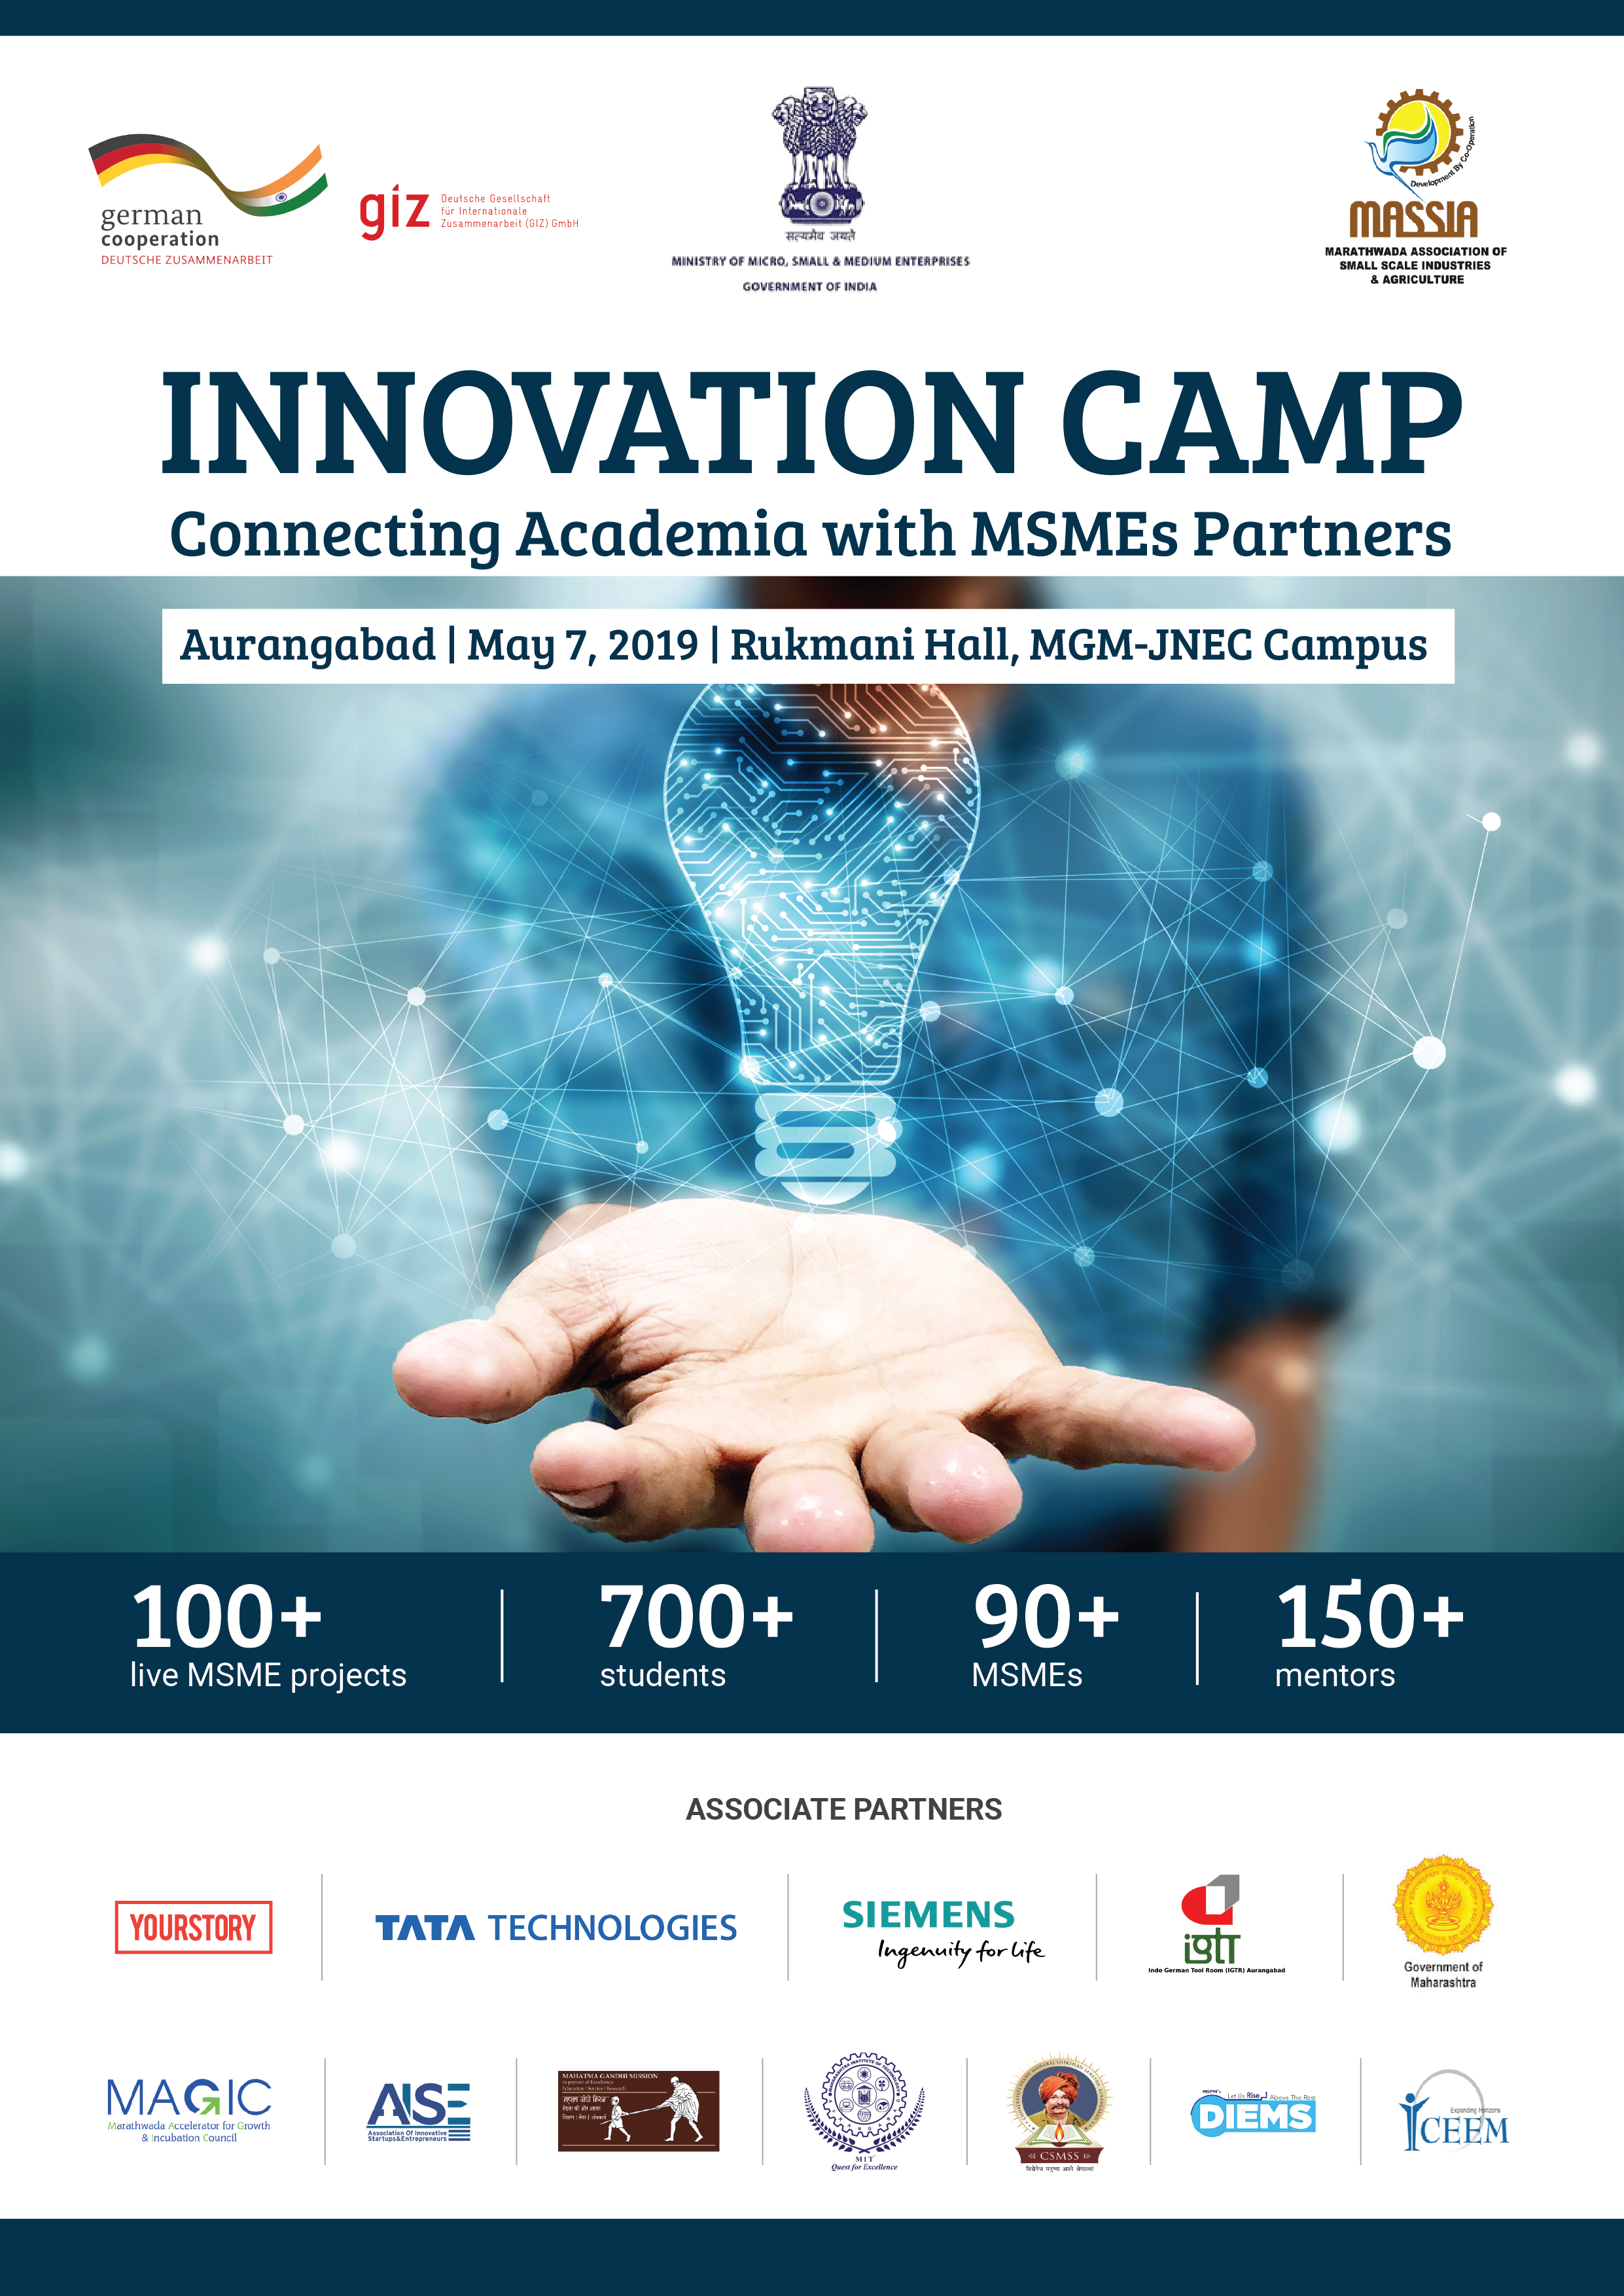 GIZ Innovation Camp to bring together academia and industry